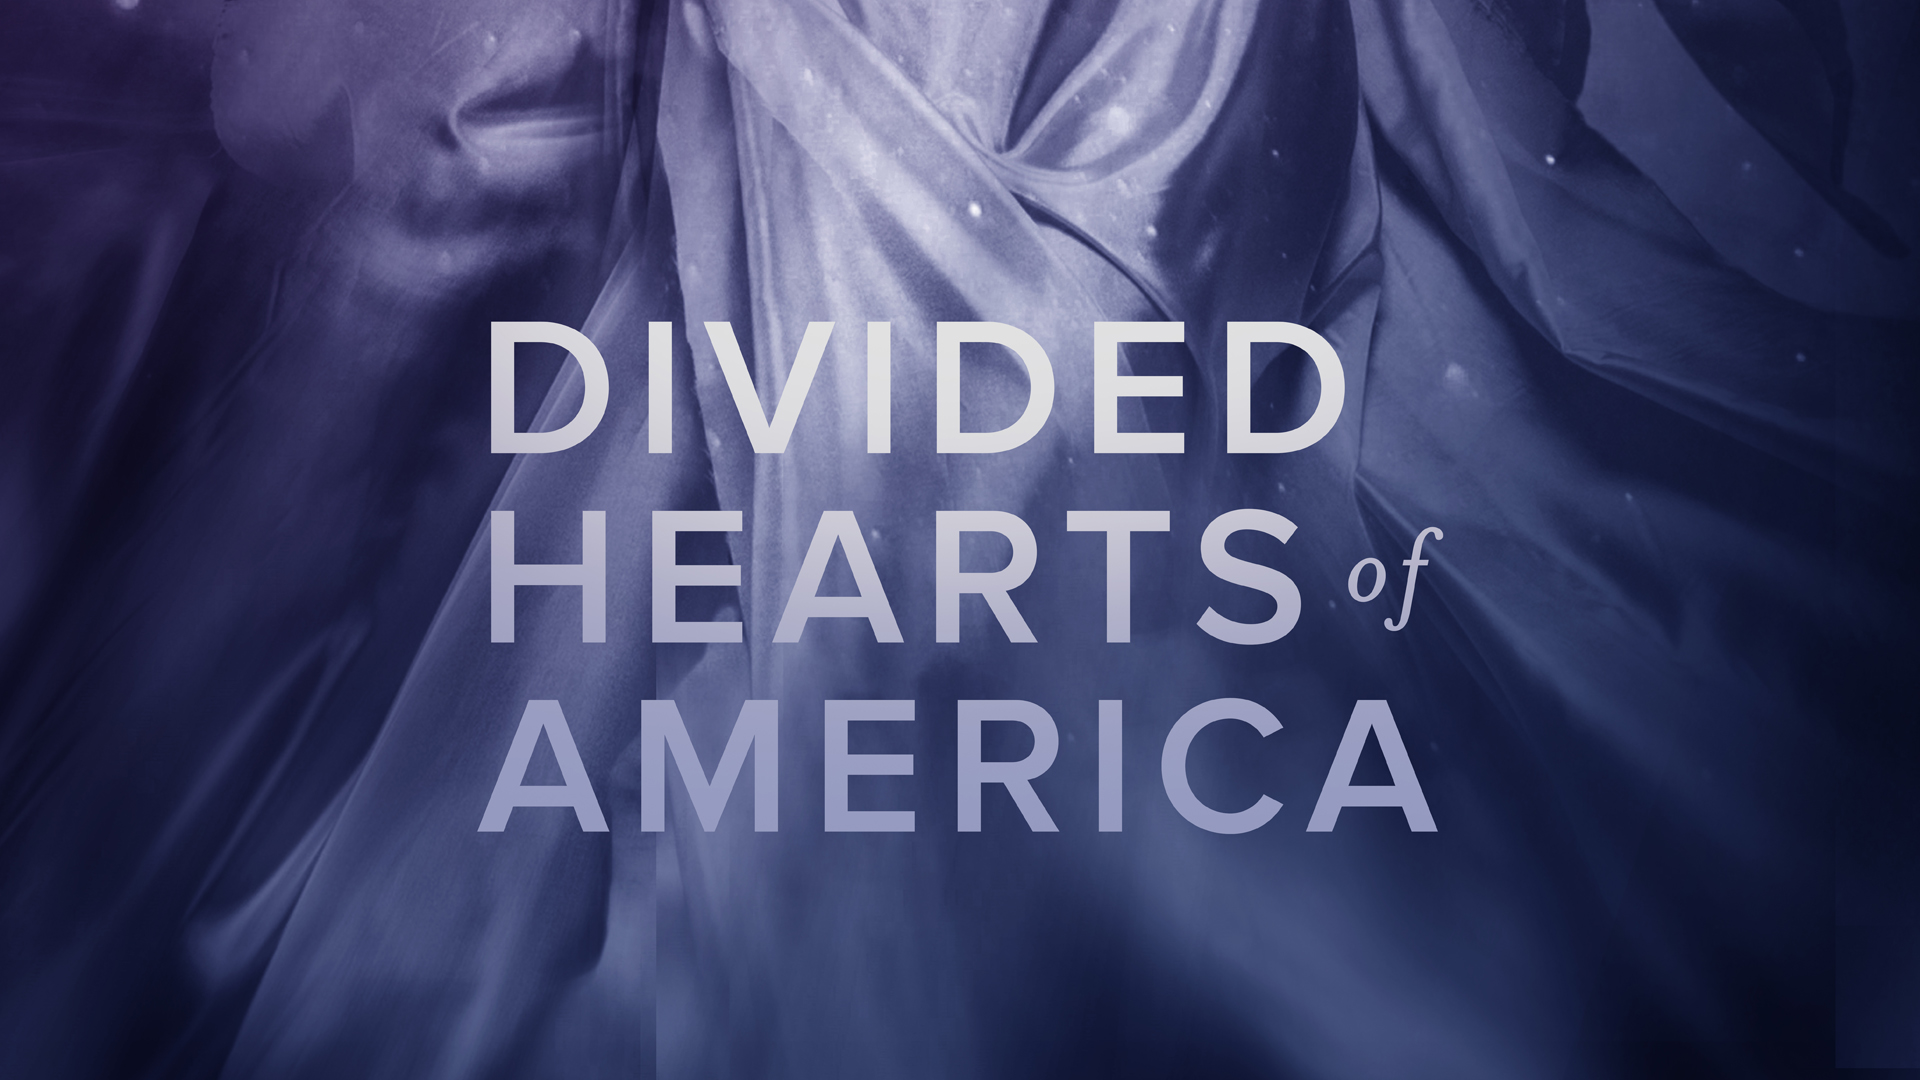 Divided Hearts of America